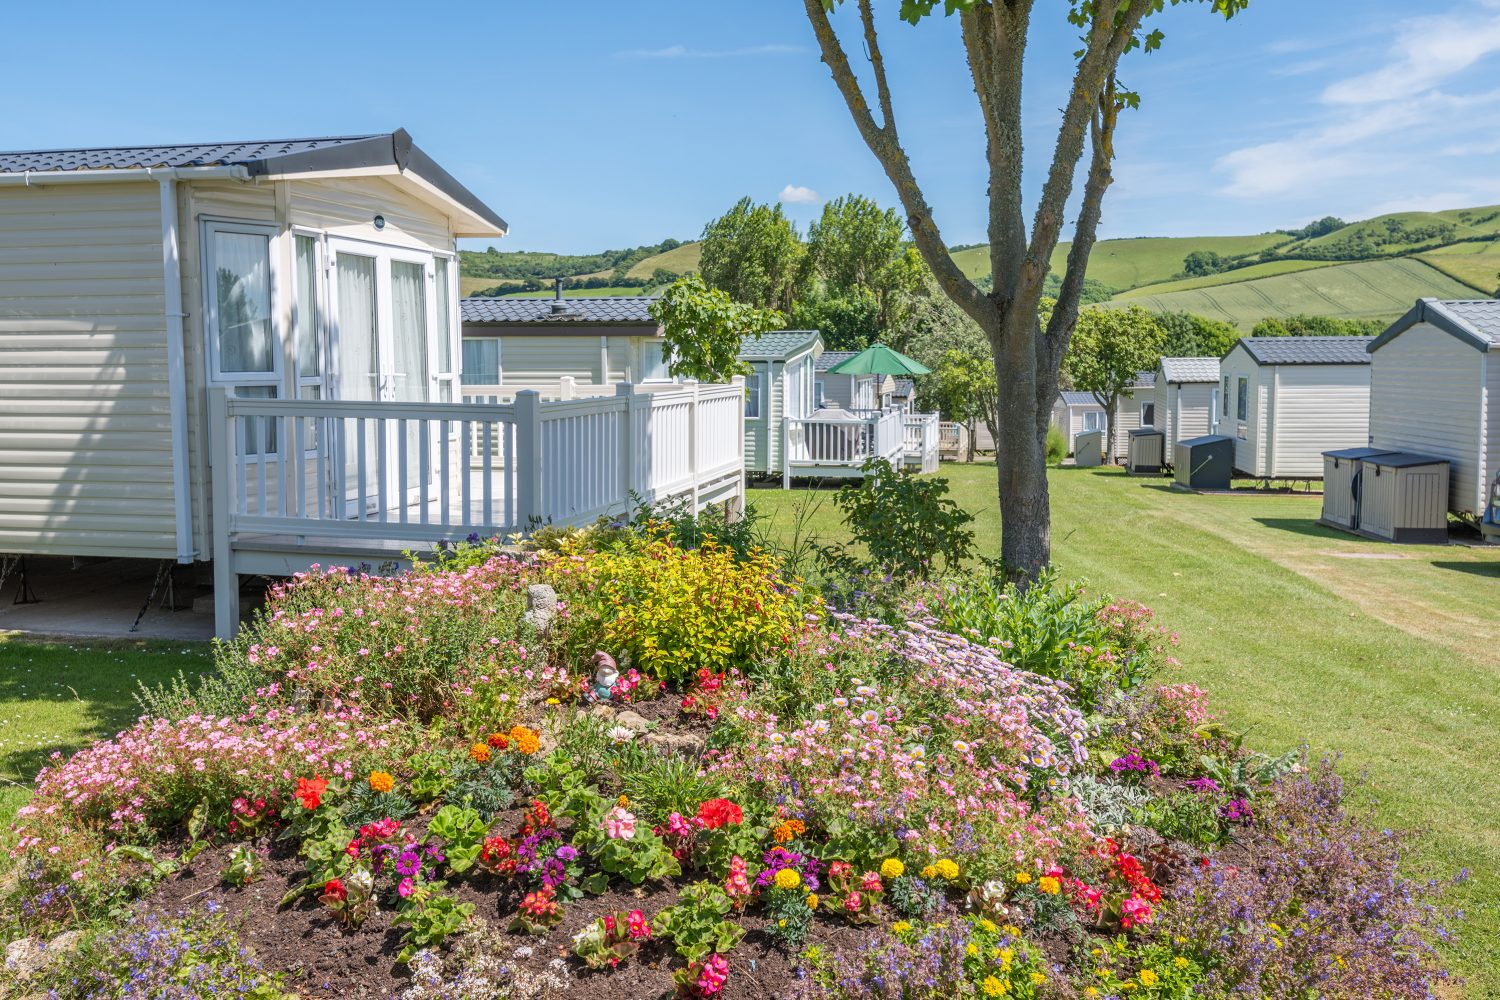 Holiday Homes for Sale in Dorset